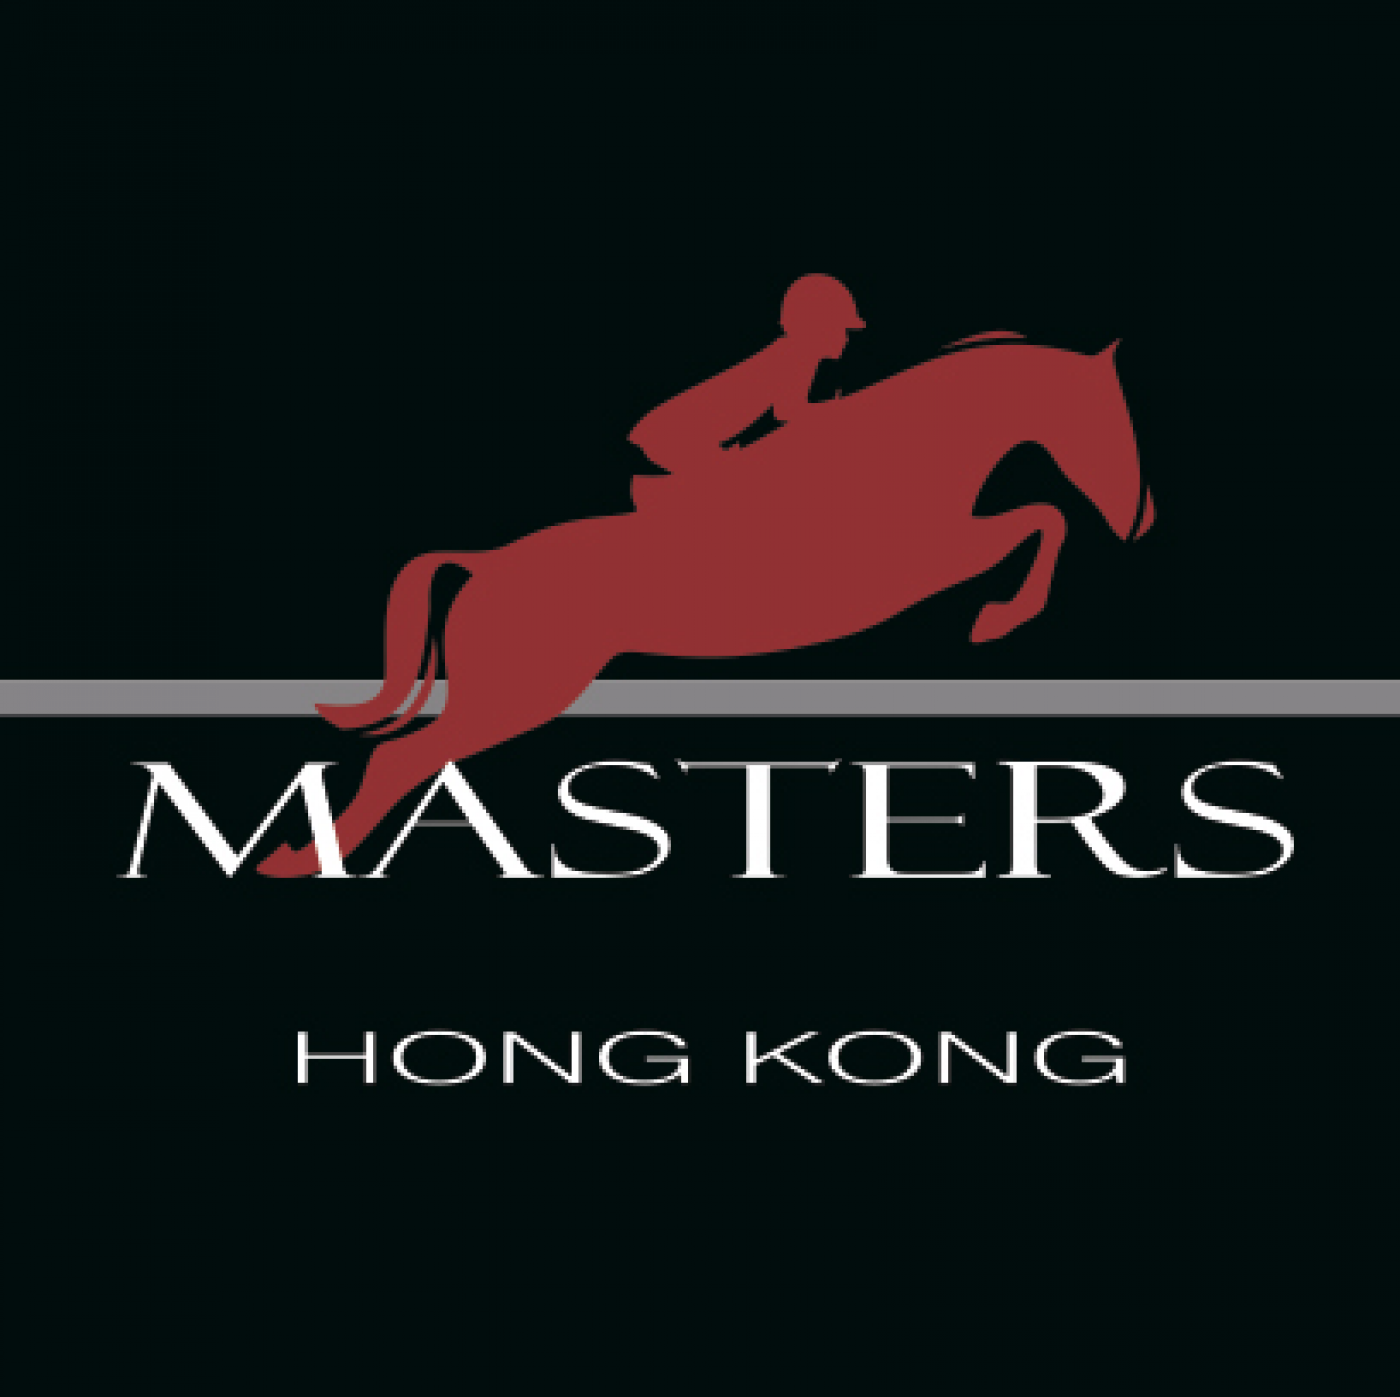 Longines Show Jumping Event: Hong Kong Masters Signs up Longines as Title Sponsor - a commitment of very long duration 4